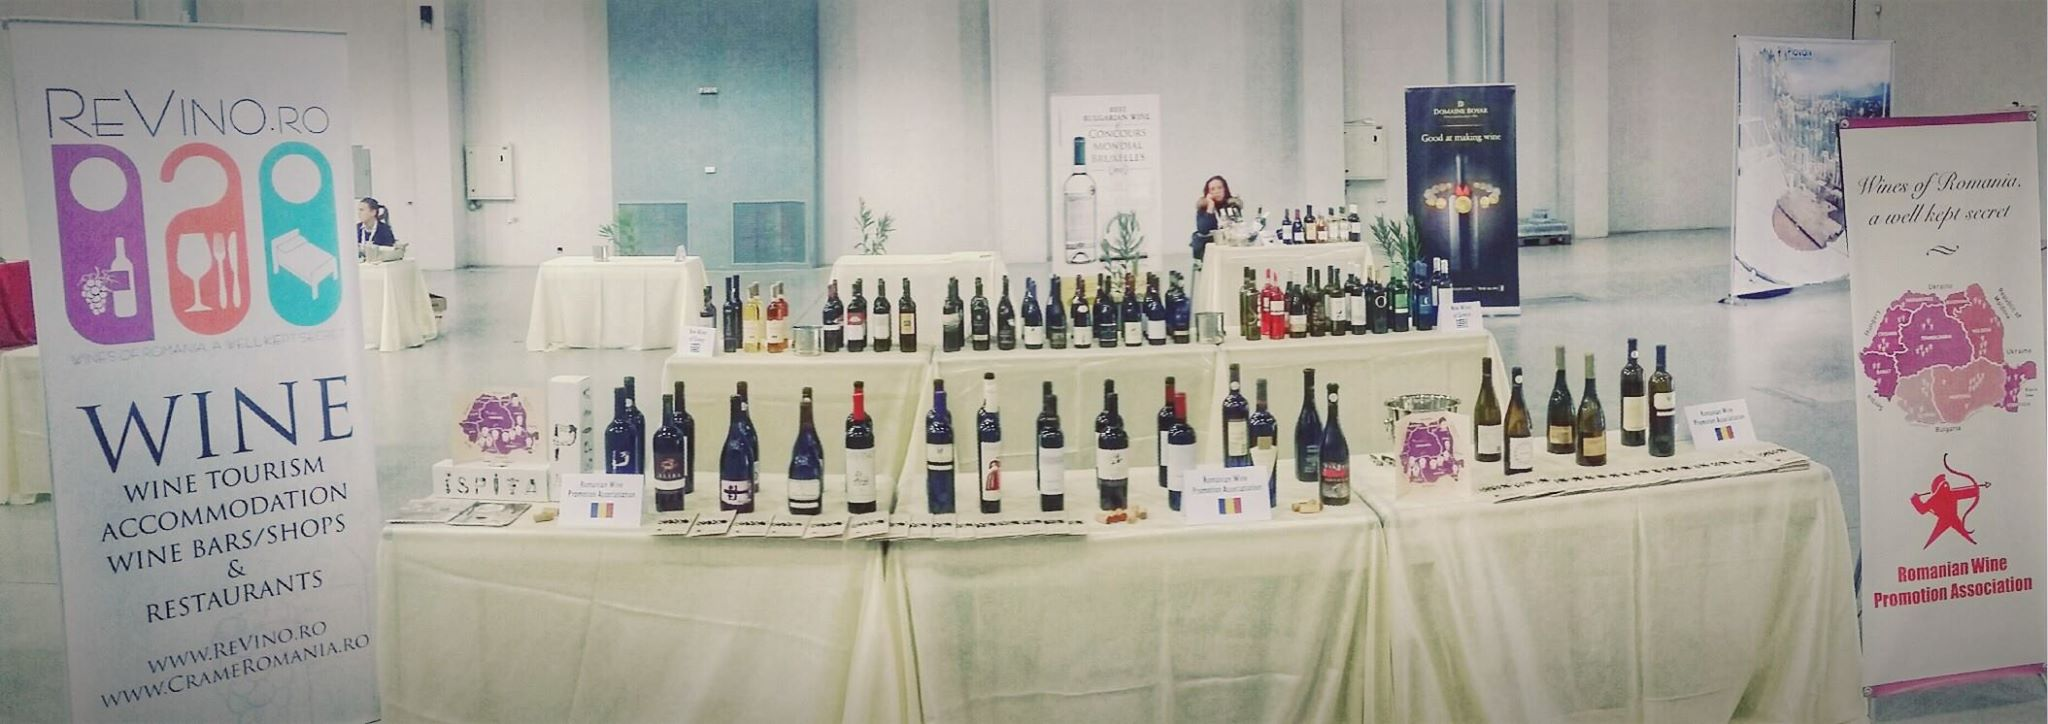 Romania's wine booth at the DWCC exhibition